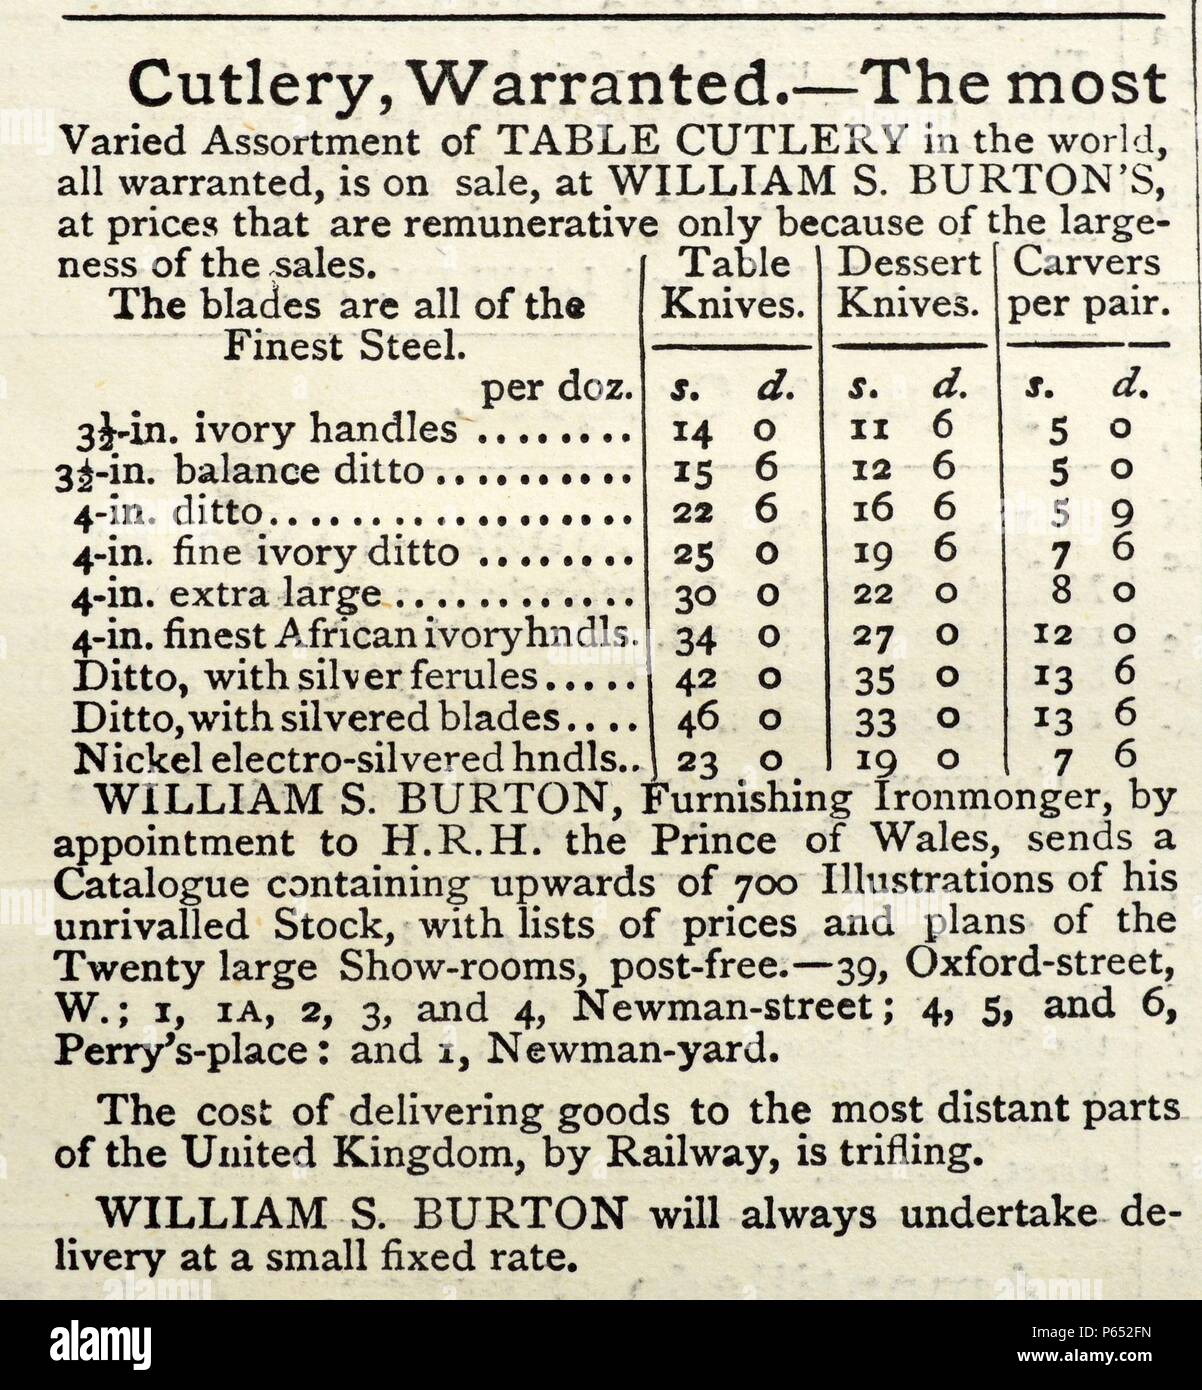 Advert in an English newspaper for stainless steel cutlery. Advert placed by the William Burton company. Adverts shows a price list for items including, ivory handles. 19th Century saw the growth of British steel industry, serving in industrial and domestic markets. - Stock Image